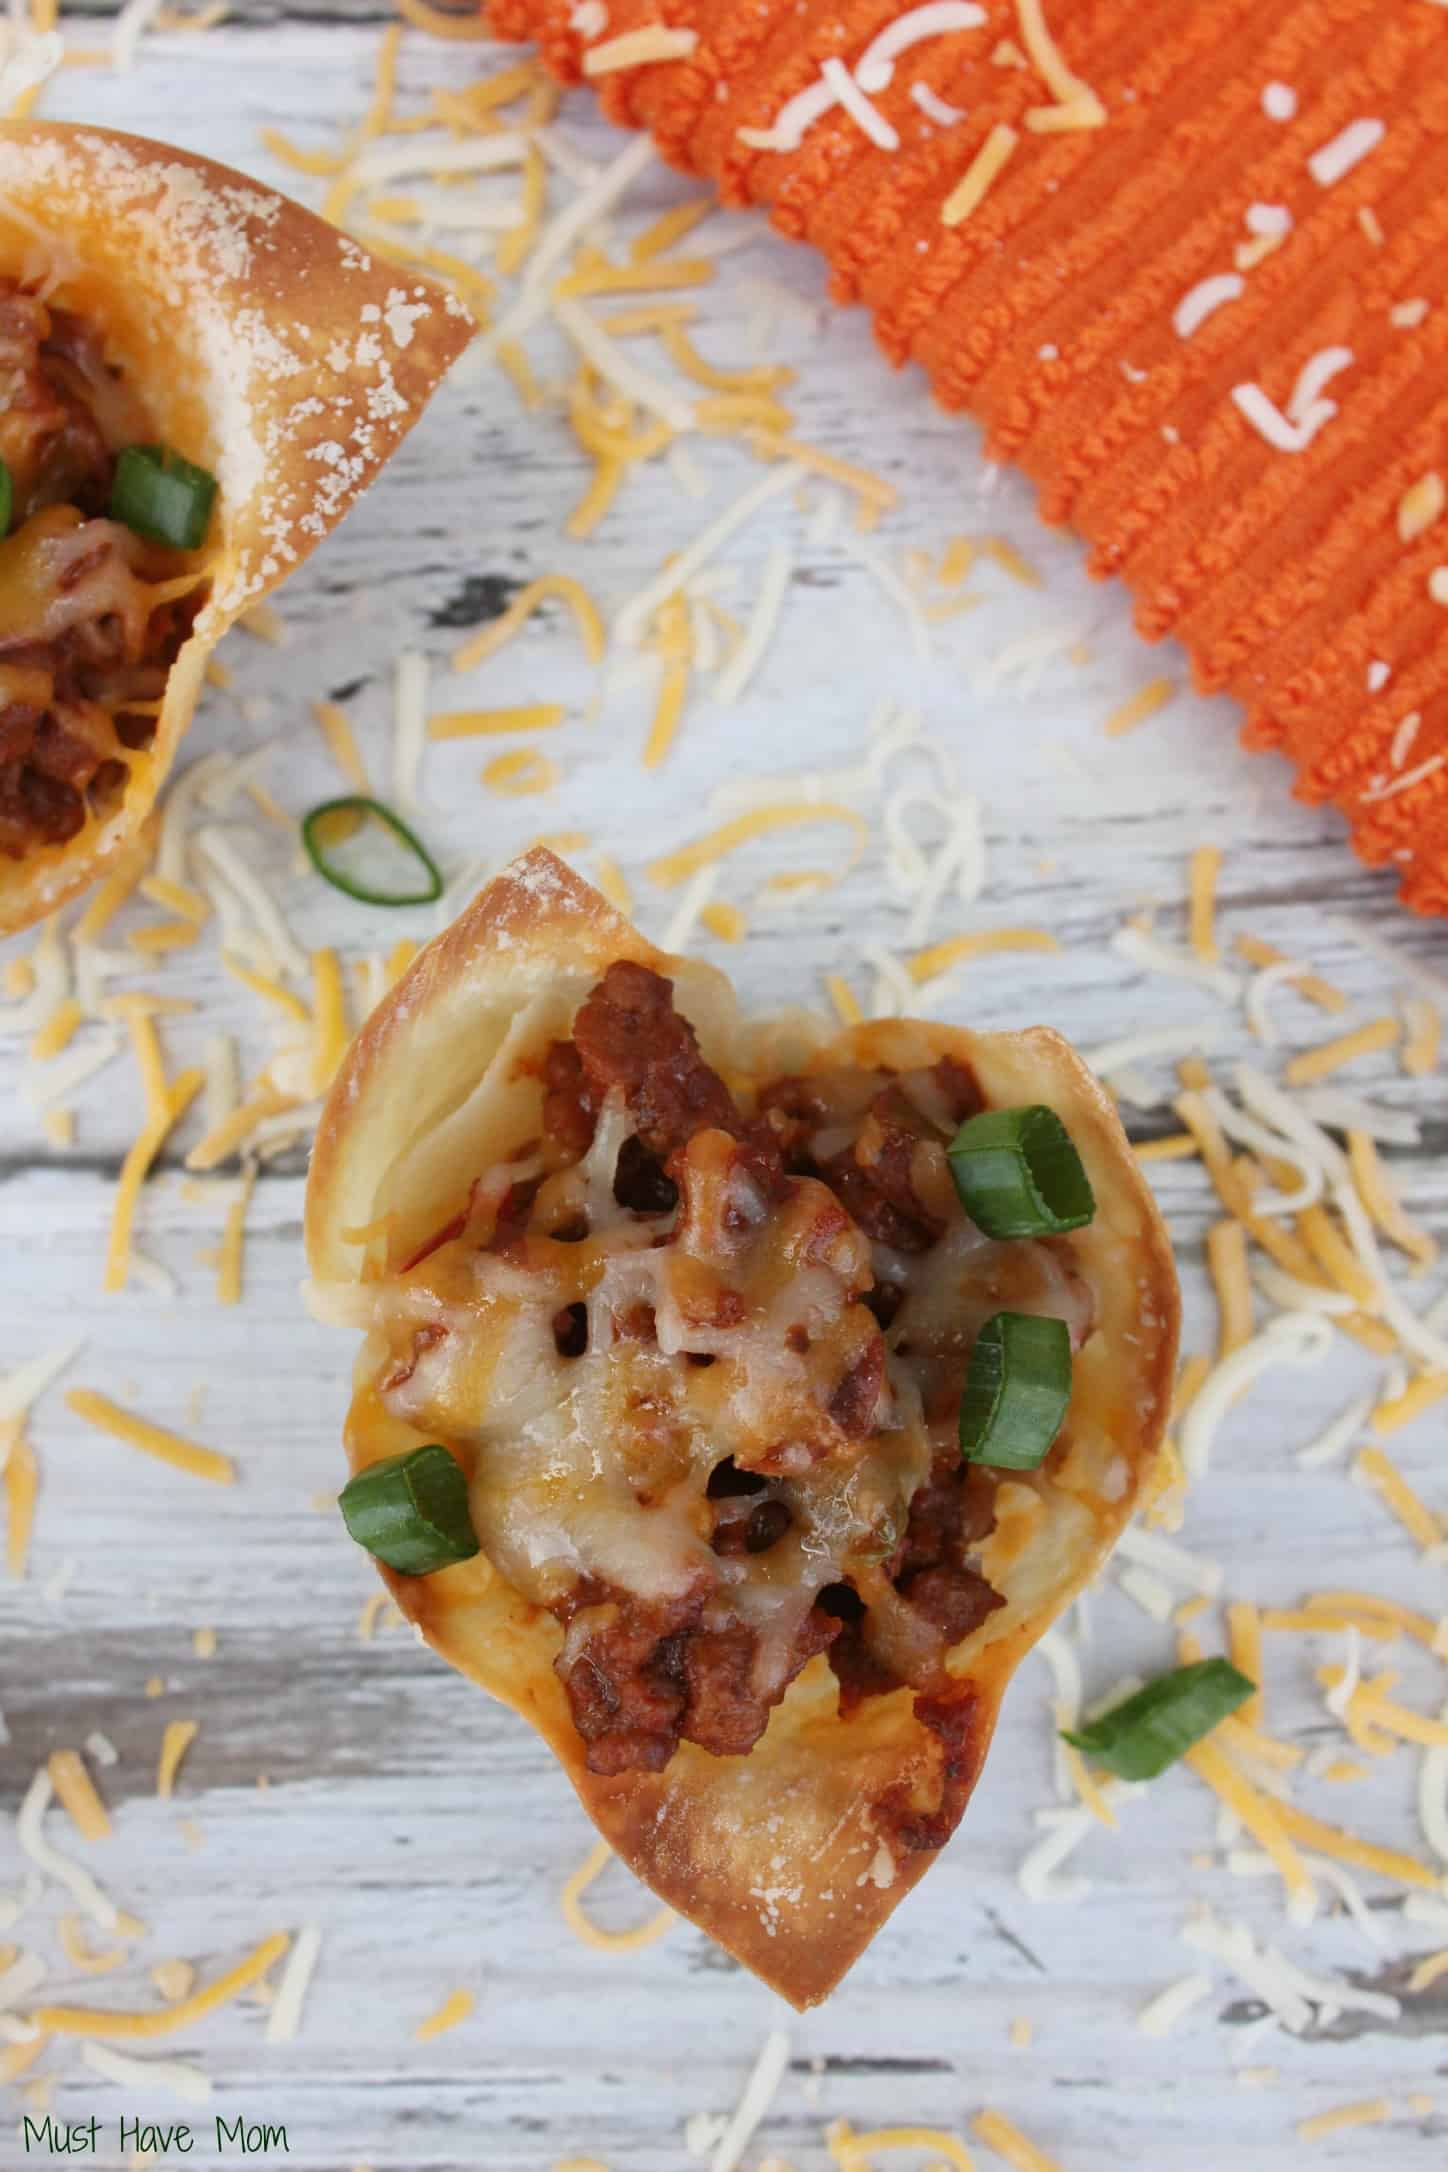 Sloppy Joe Wonton Cups Recipe -Musthavemom.com